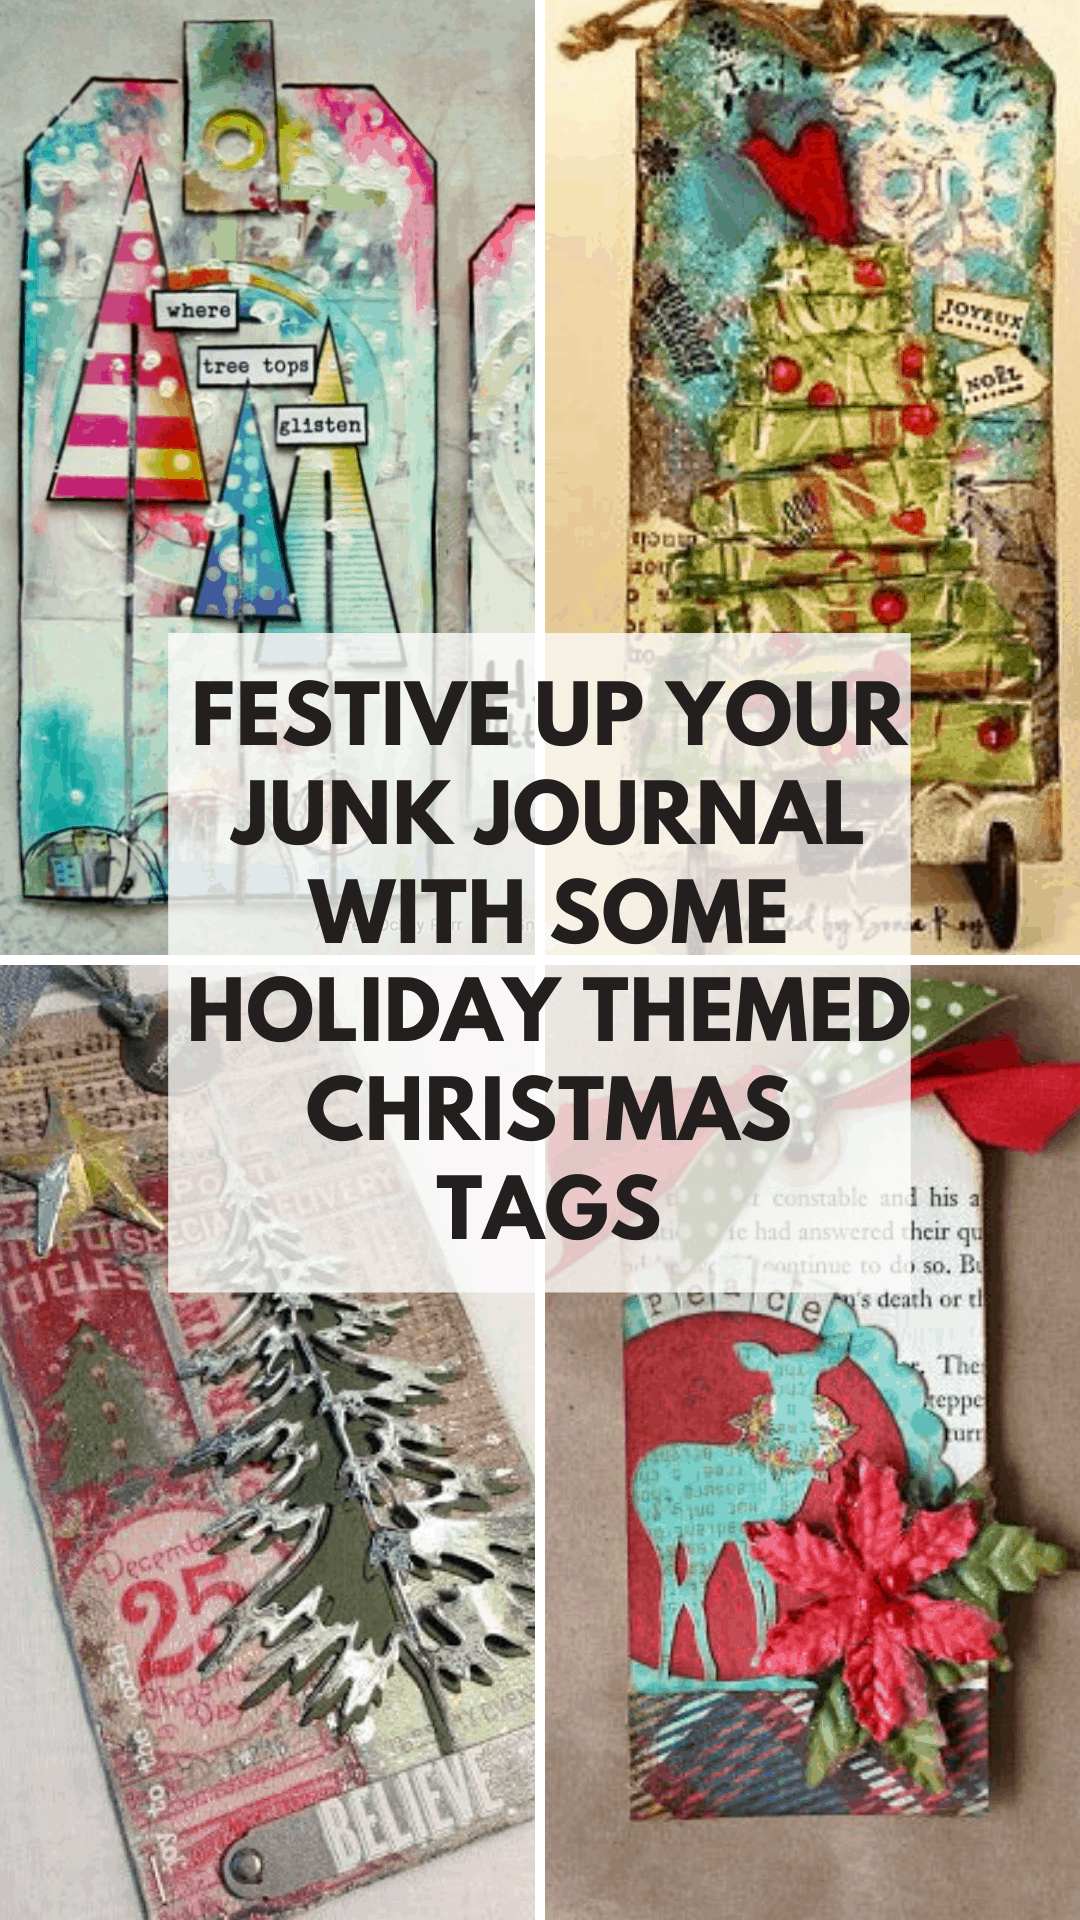 Can't wait to festive up my junk journal with some of these Christmas tags to fill up my pockets and journal on!